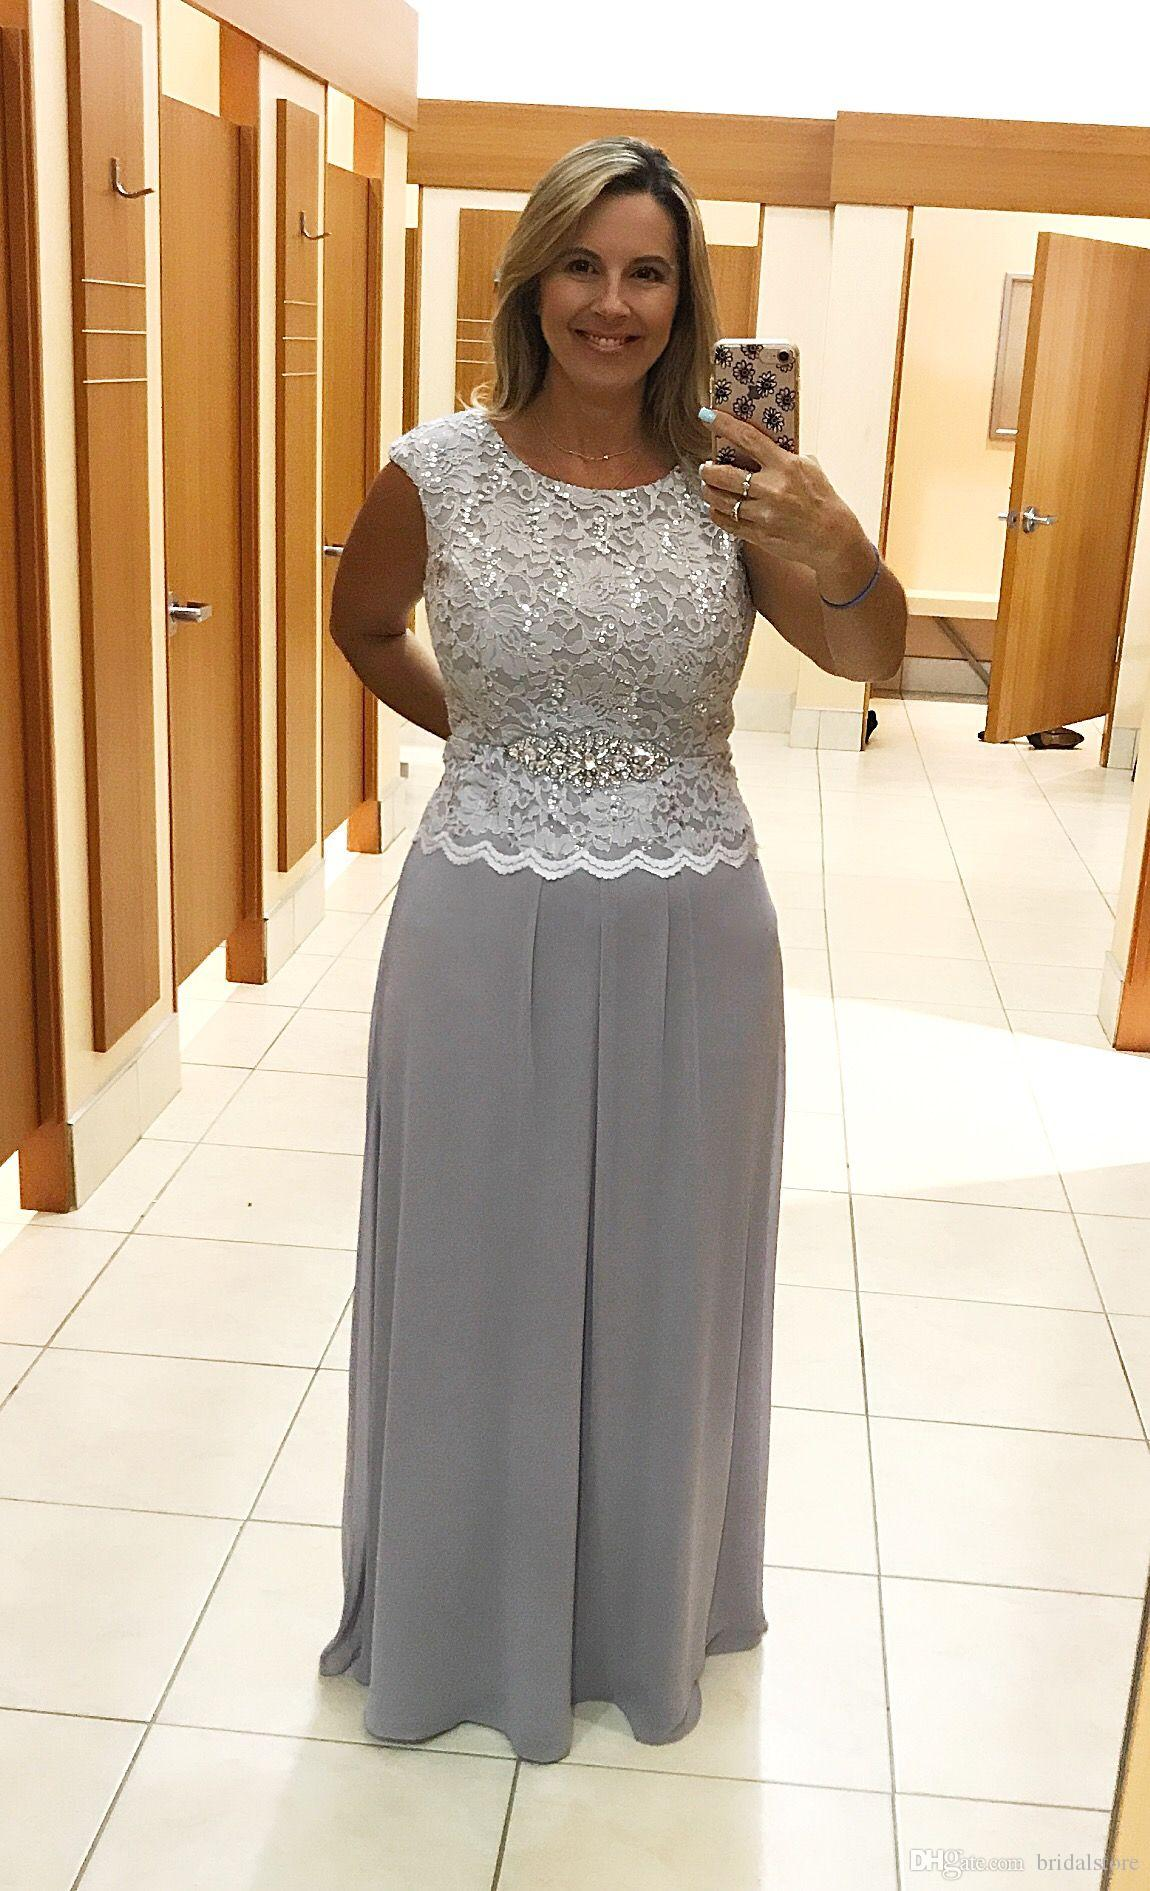 Summer Silver Mother Of Bride Dresses Jewel Top Sequin Lace Embellished  Plus Size Groom Mother Dress Elegant Floor Length Chiffon Outfits Mother Of  ...